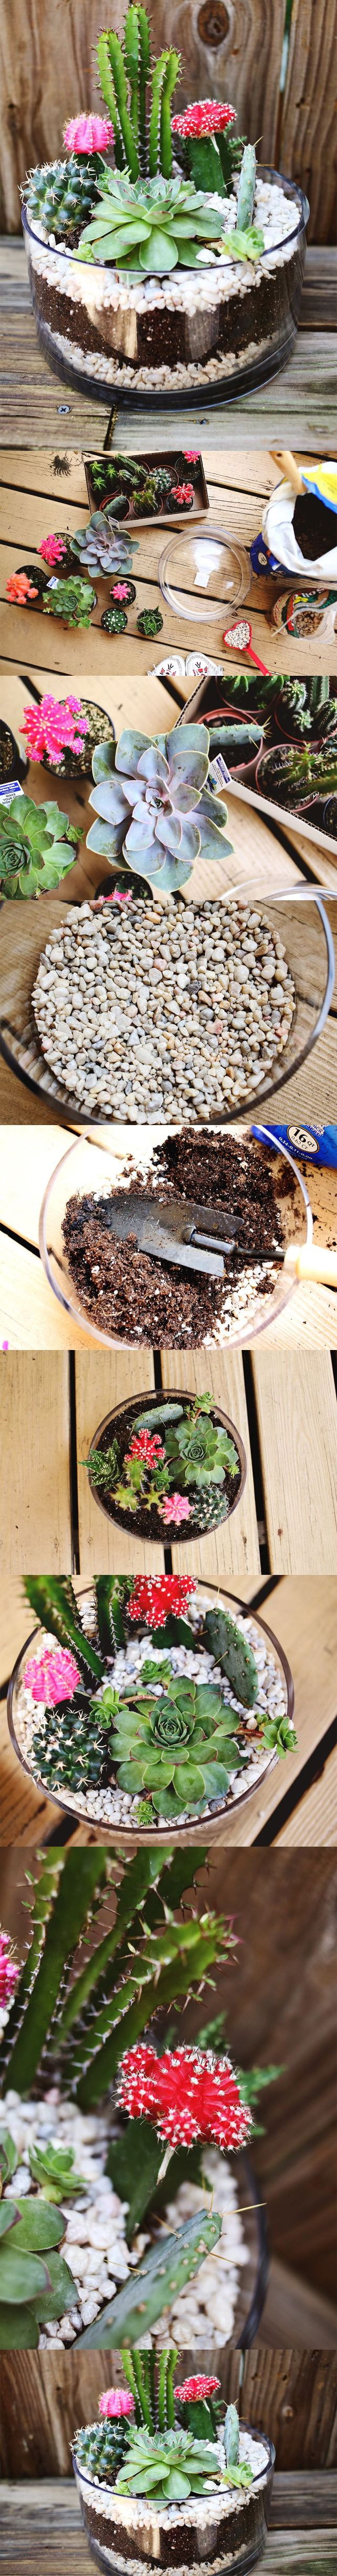 best images about planten on pinterest terrarium ideas sand